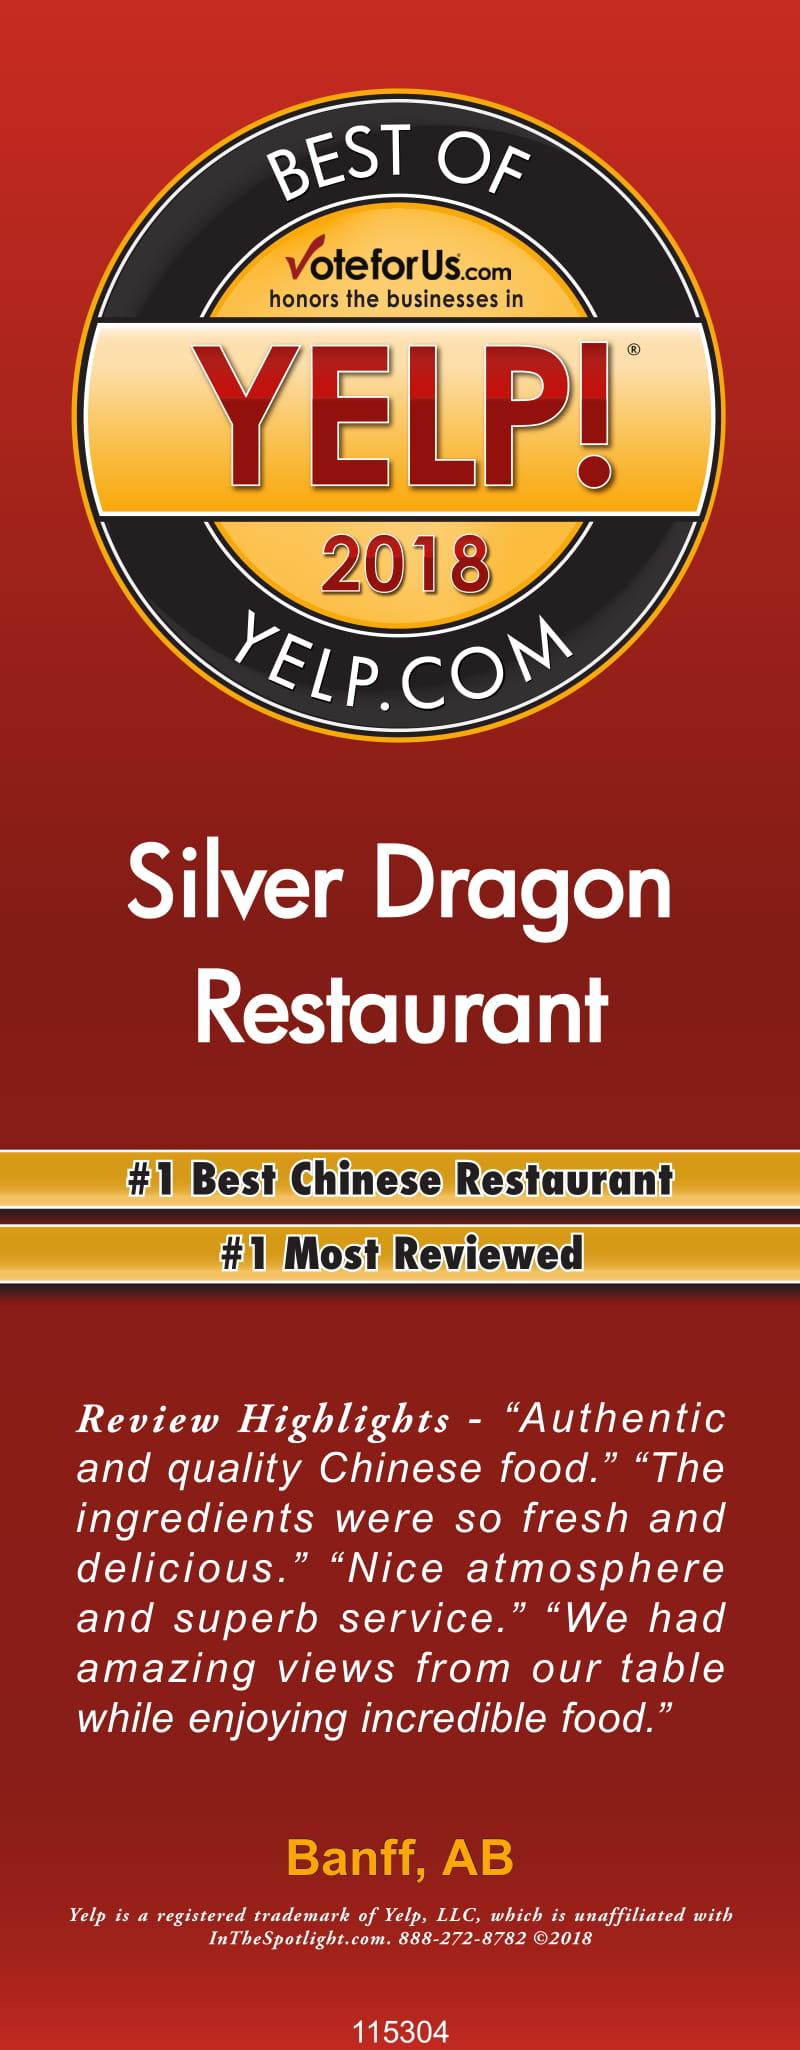 Silver-Dragon-Restaurant-2-1